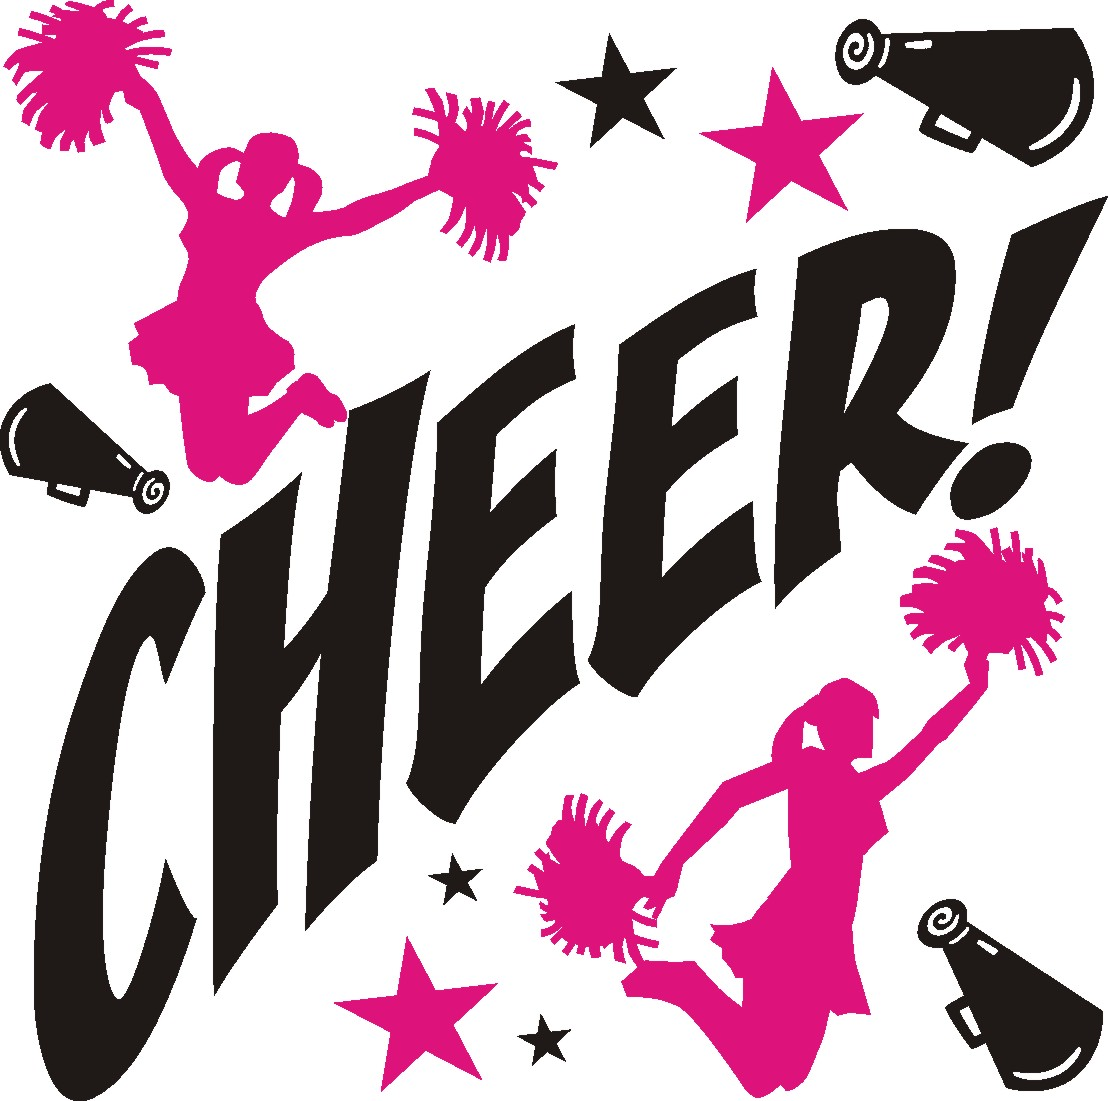 cheerleading silhouette clipart at getdrawings com free for rh getdrawings com clipart images of cheerleaders clip art cheerleader pom poms